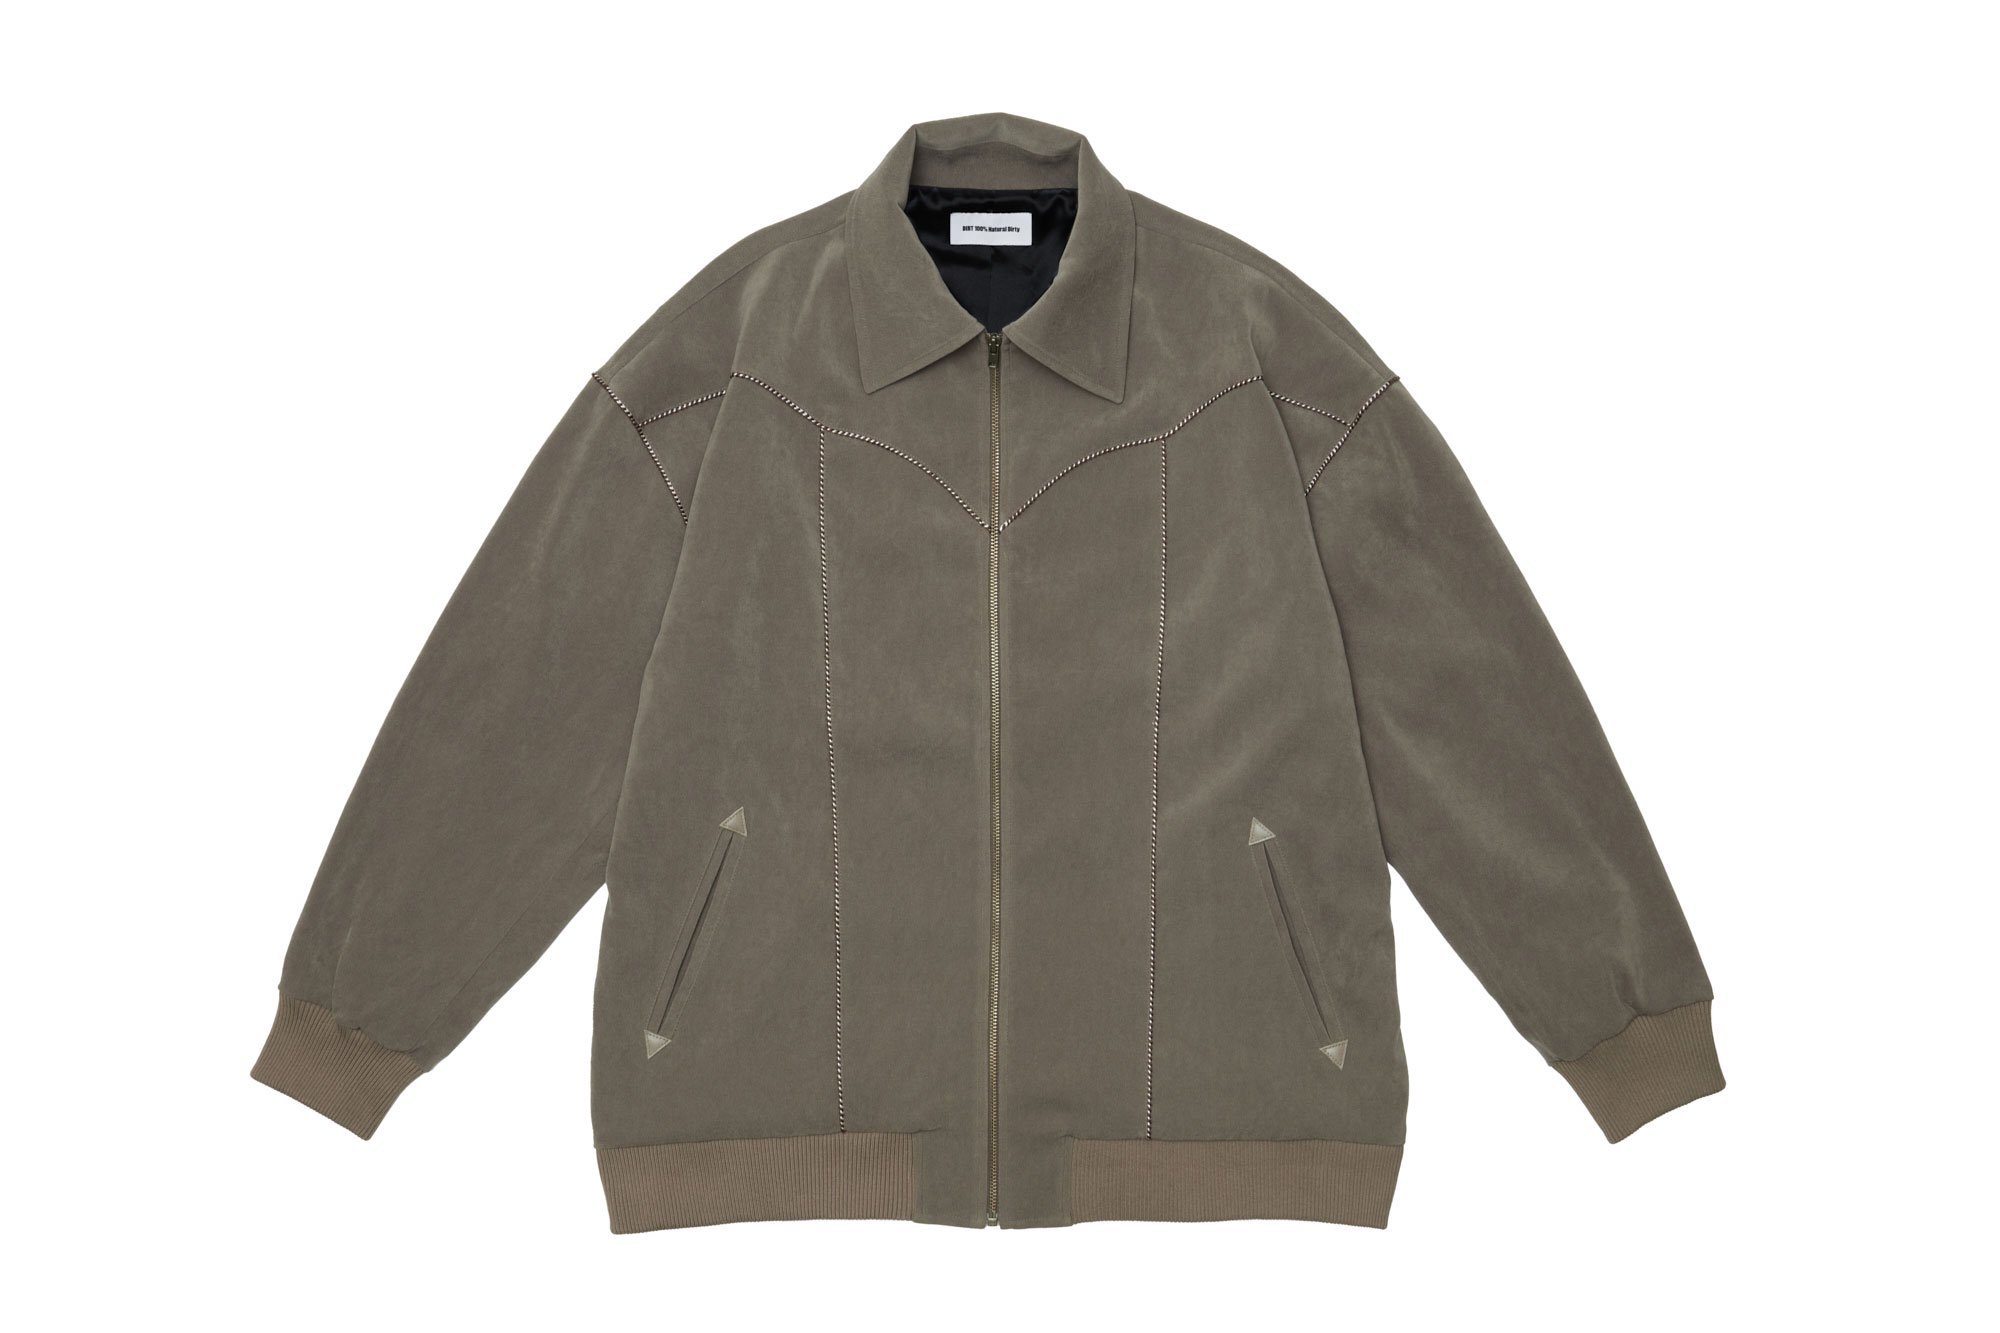 <img class='new_mark_img1' src='https://img.shop-pro.jp/img/new/icons14.gif' style='border:none;display:inline;margin:0px;padding:0px;width:auto;' />2020AW collection Western Blouson KH